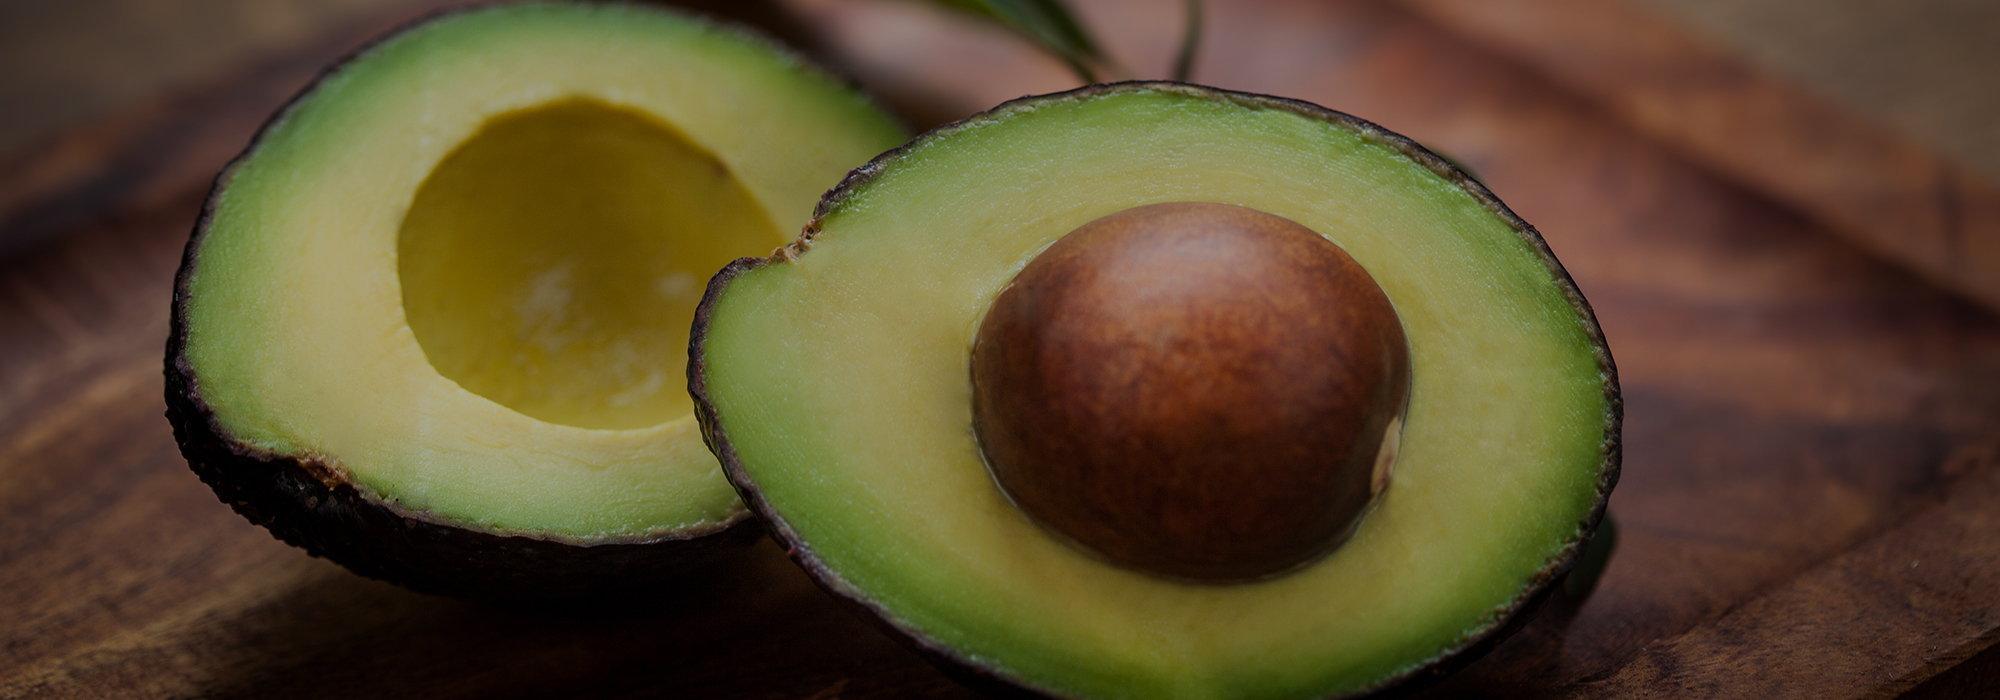 Another reason to eat avocados